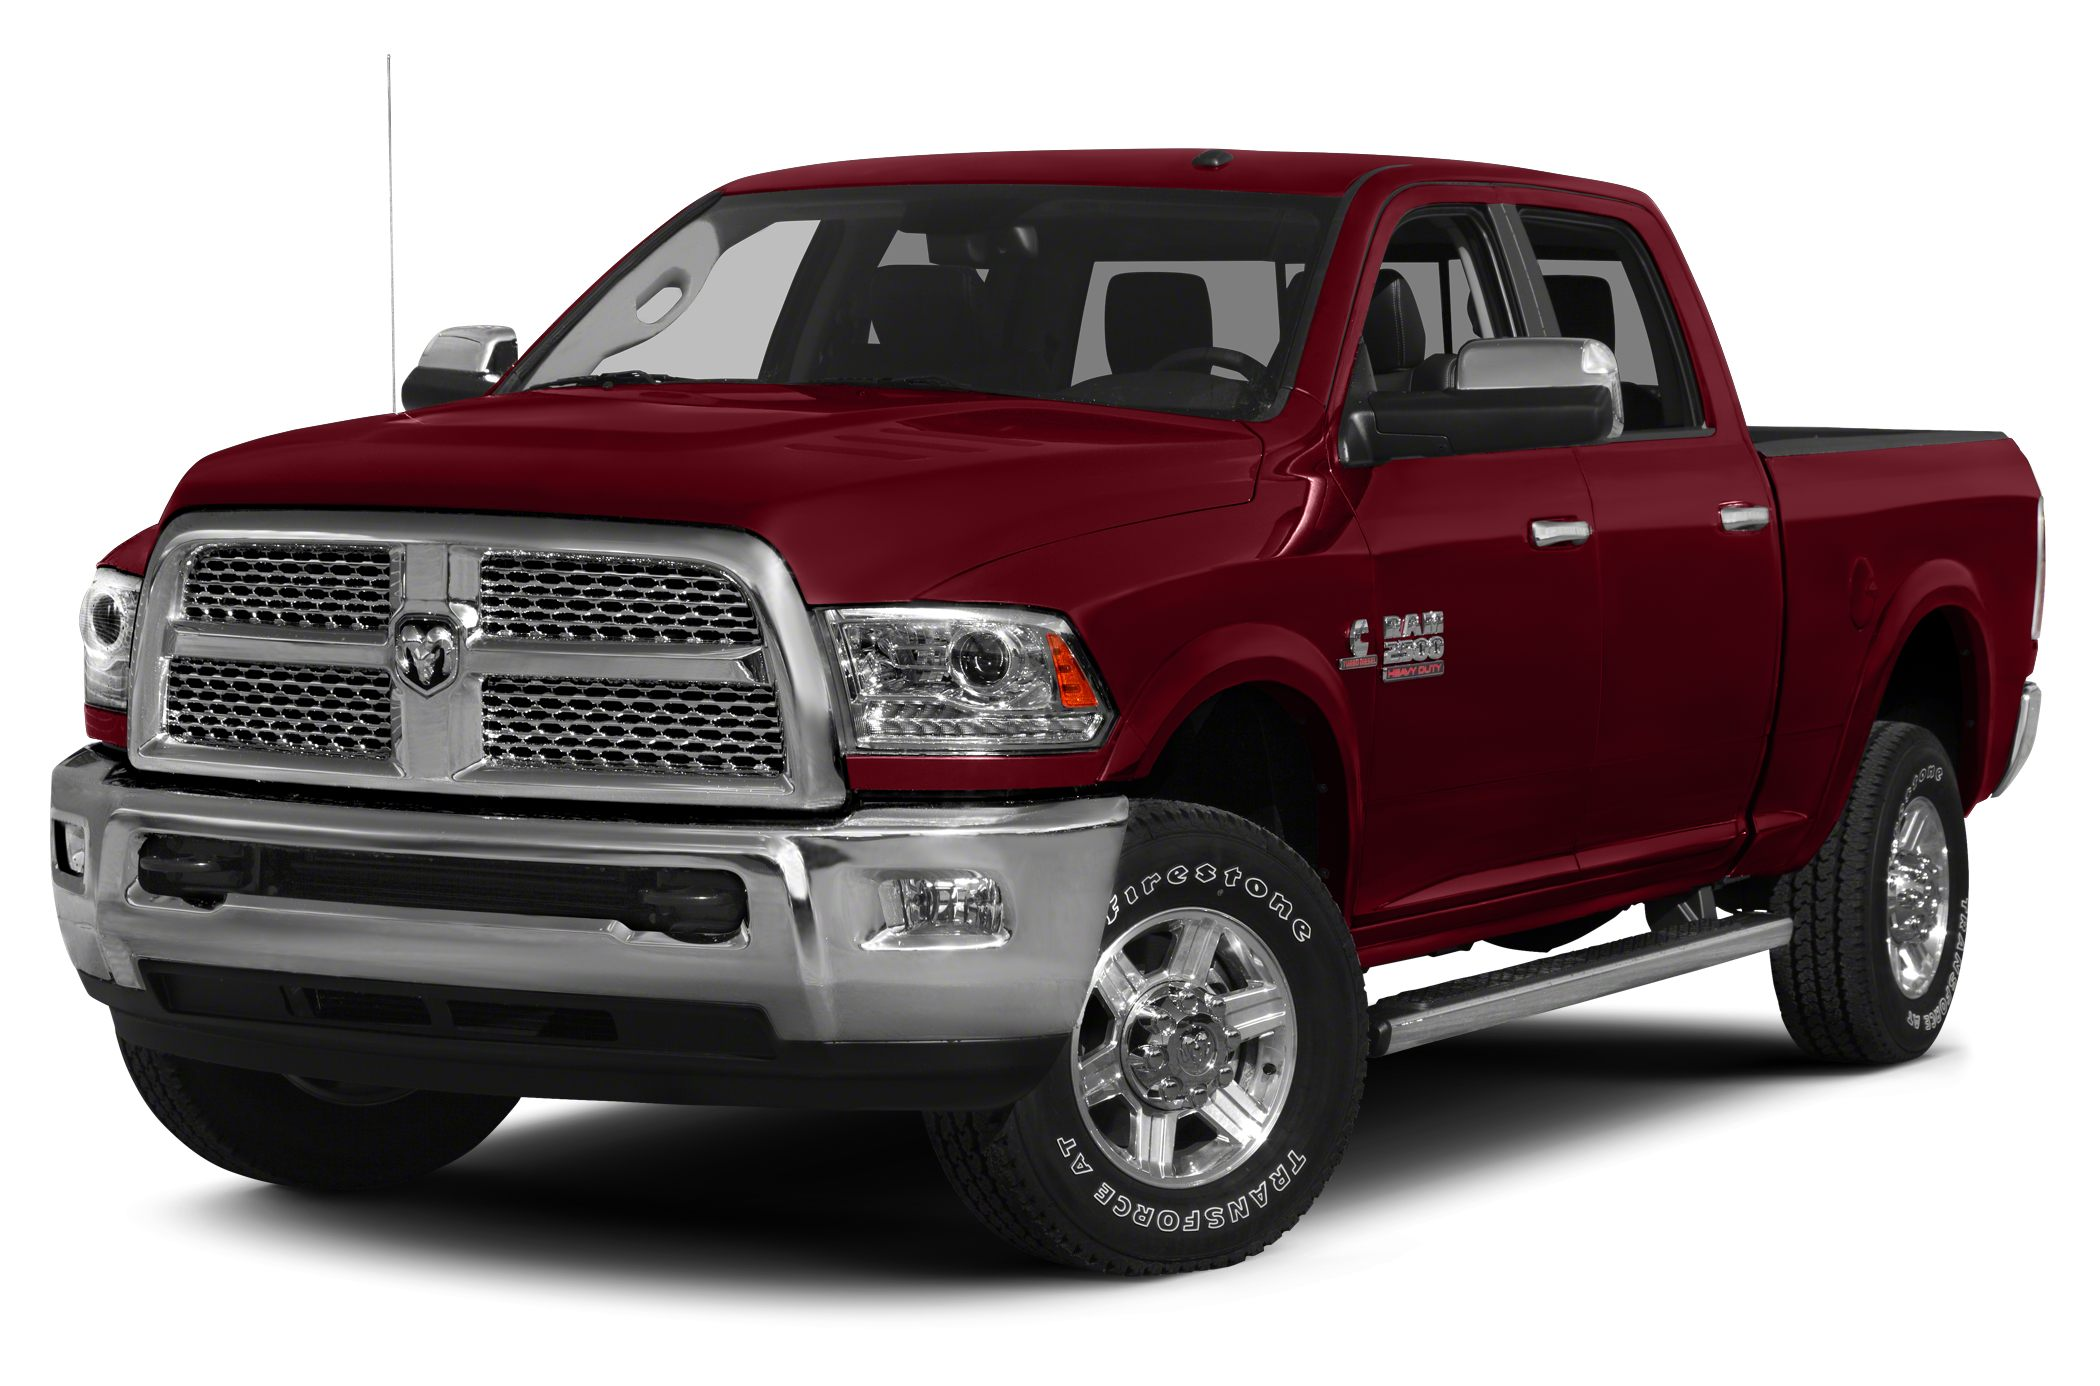 2015 RAM 2500 Laramie Crew Cab Pickup for sale in Gadsden for $54,198 with 8 miles